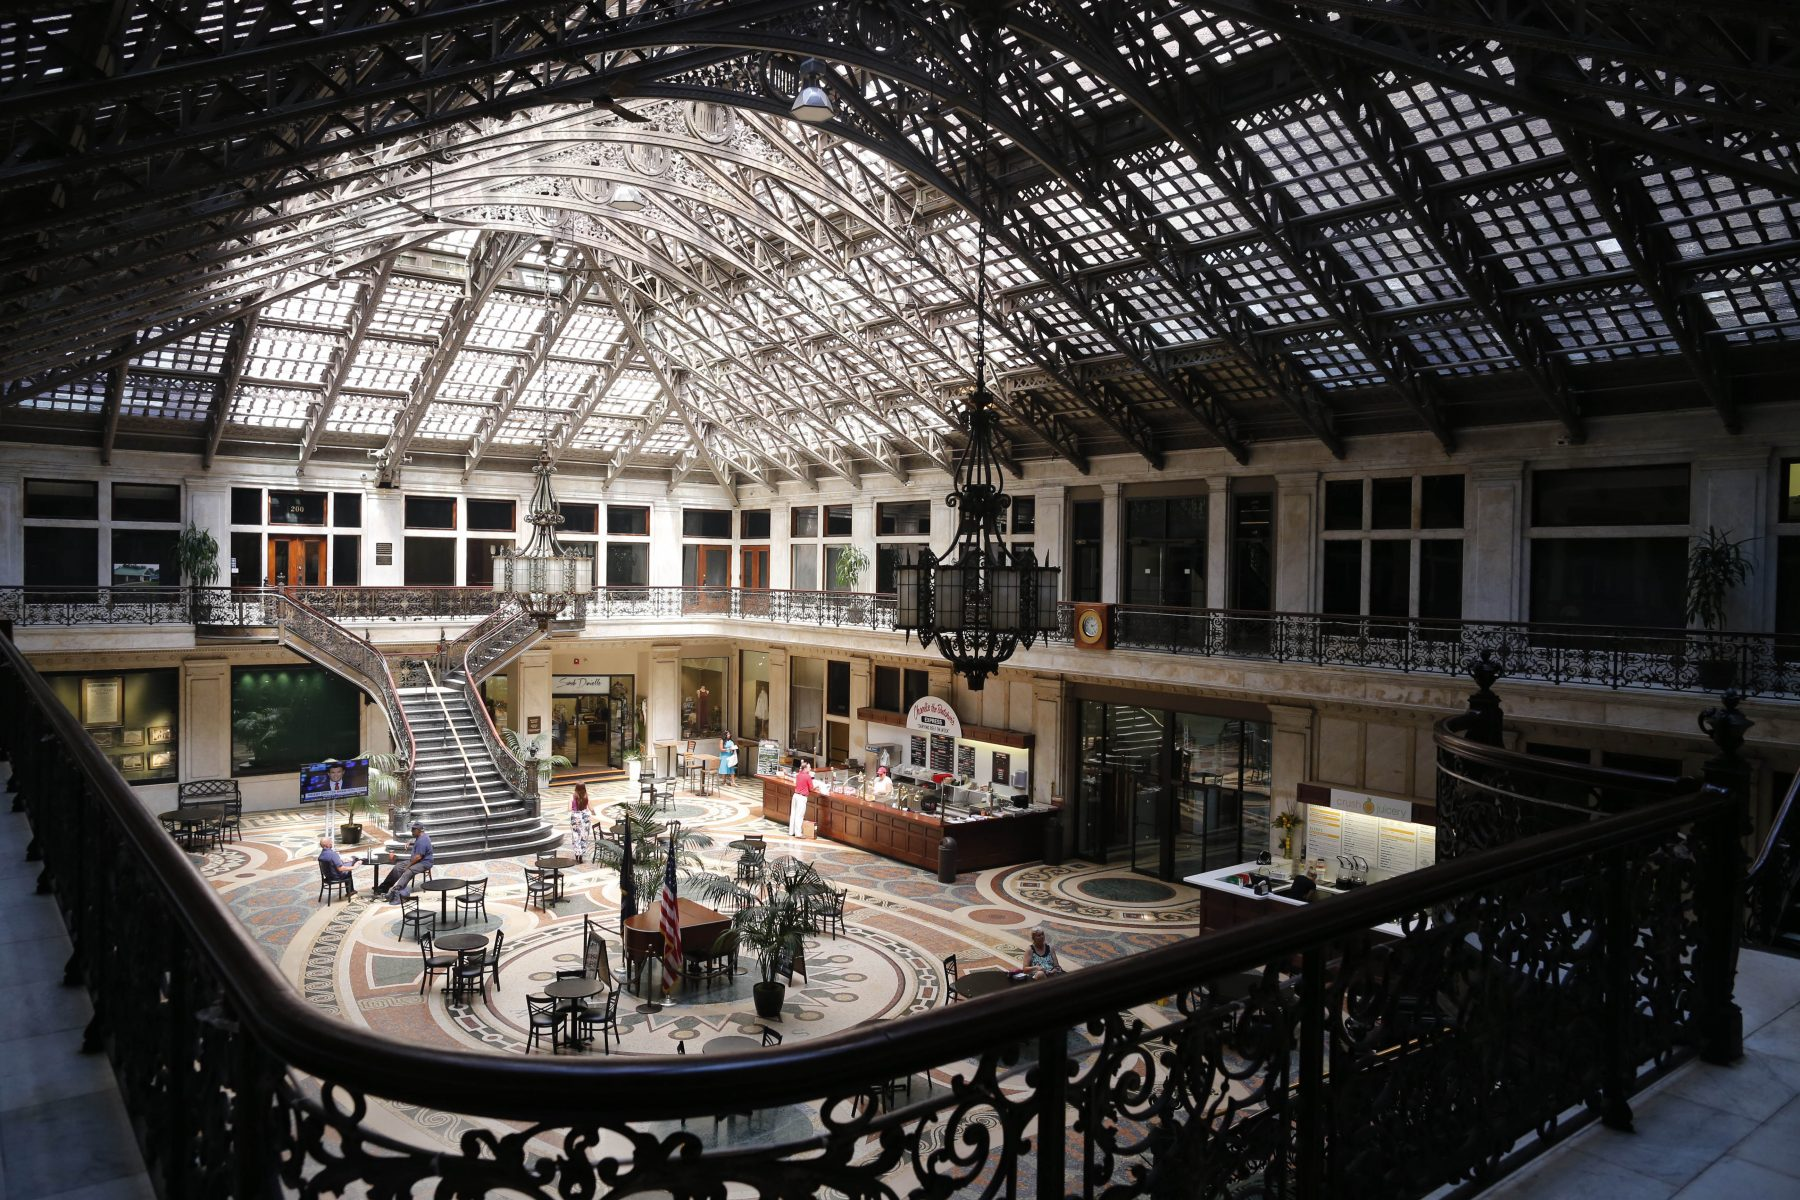 The Ellicott Square Building is included on the Inside Downtown South walking tour from Explore Buffalo. (Derek Gee/Buffalo News file photo)